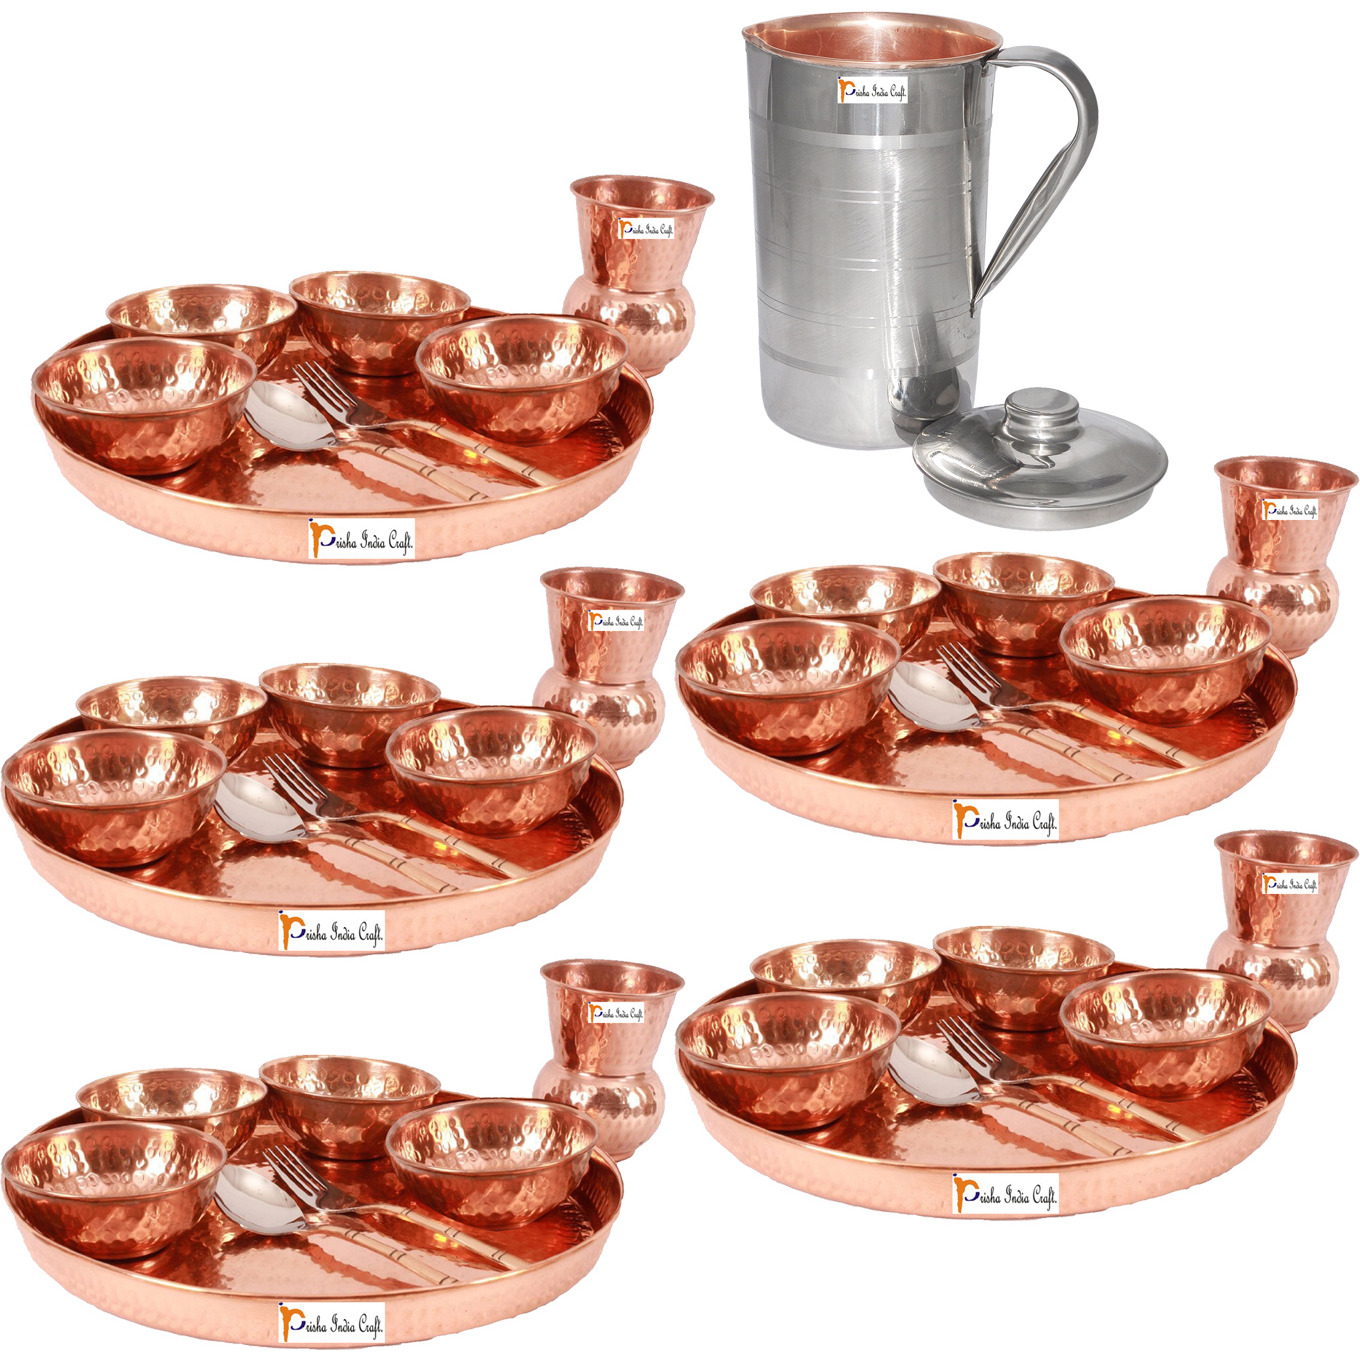 Prisha India Craft B. Set of 5 Dinnerware Traditional 100% Pure Copper Dinner Set of Thali Plate, Bowls, Glass and Spoon, Dia 12  With 1 Luxury Style Pitcher Jug - Christmas Gift